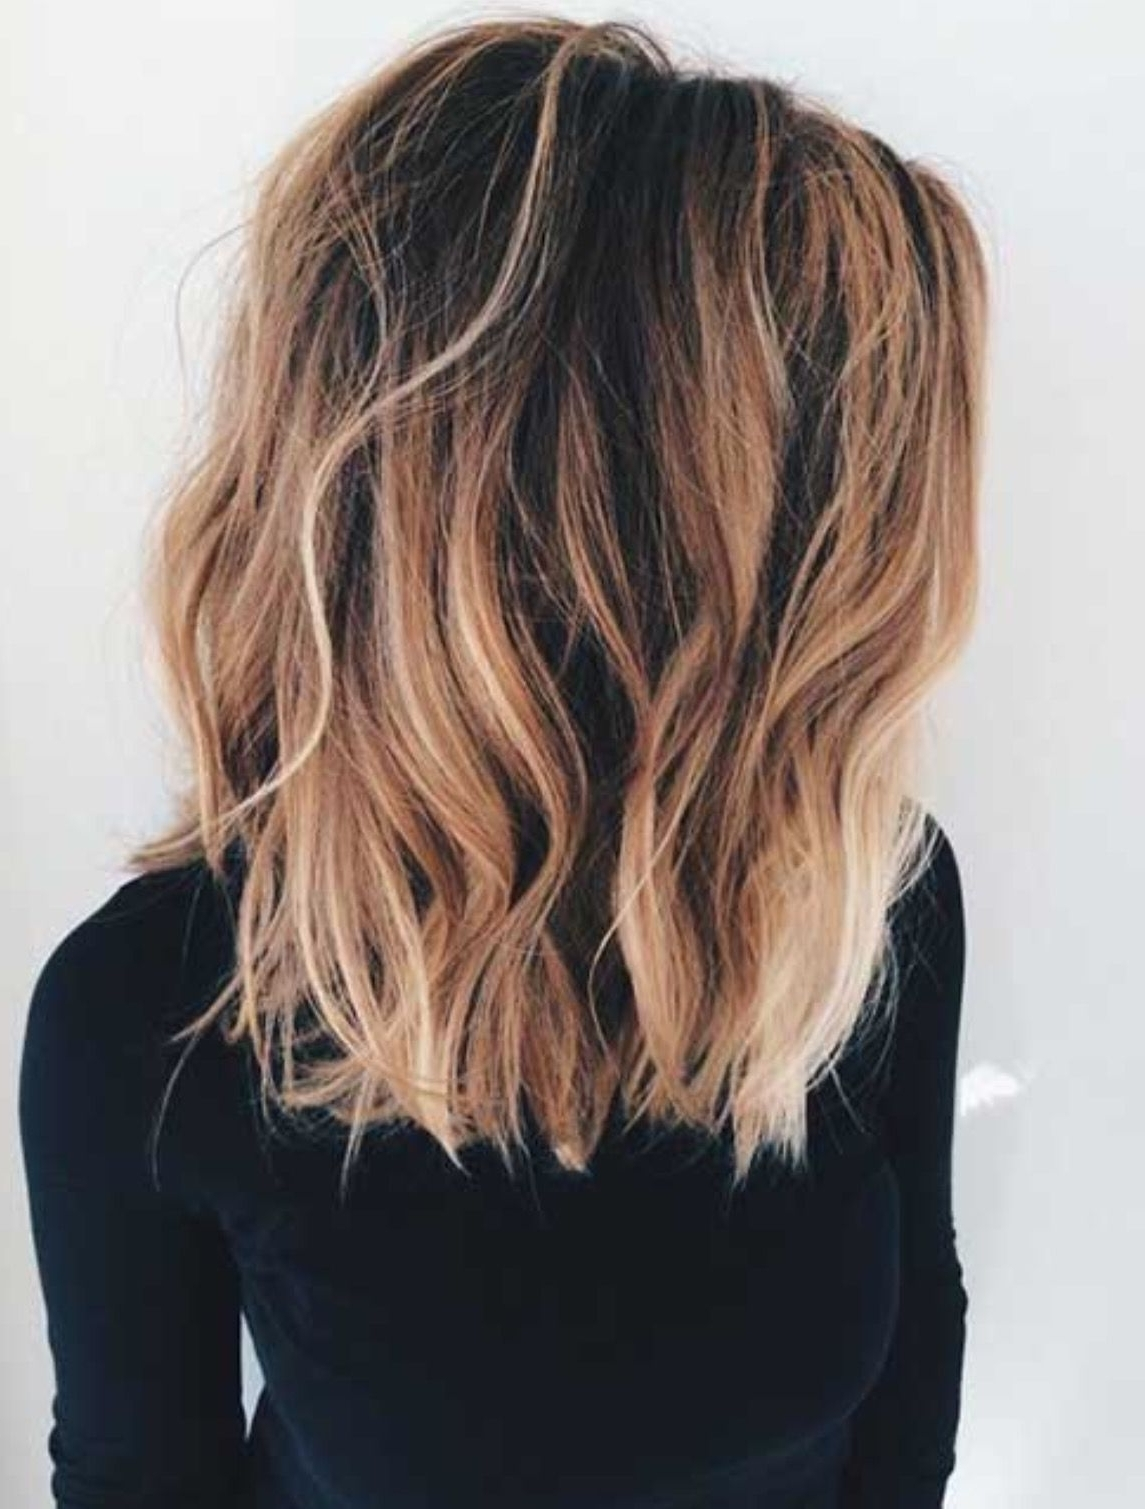 20 Collection of Brown And Dark Blonde Layers Hairstyles